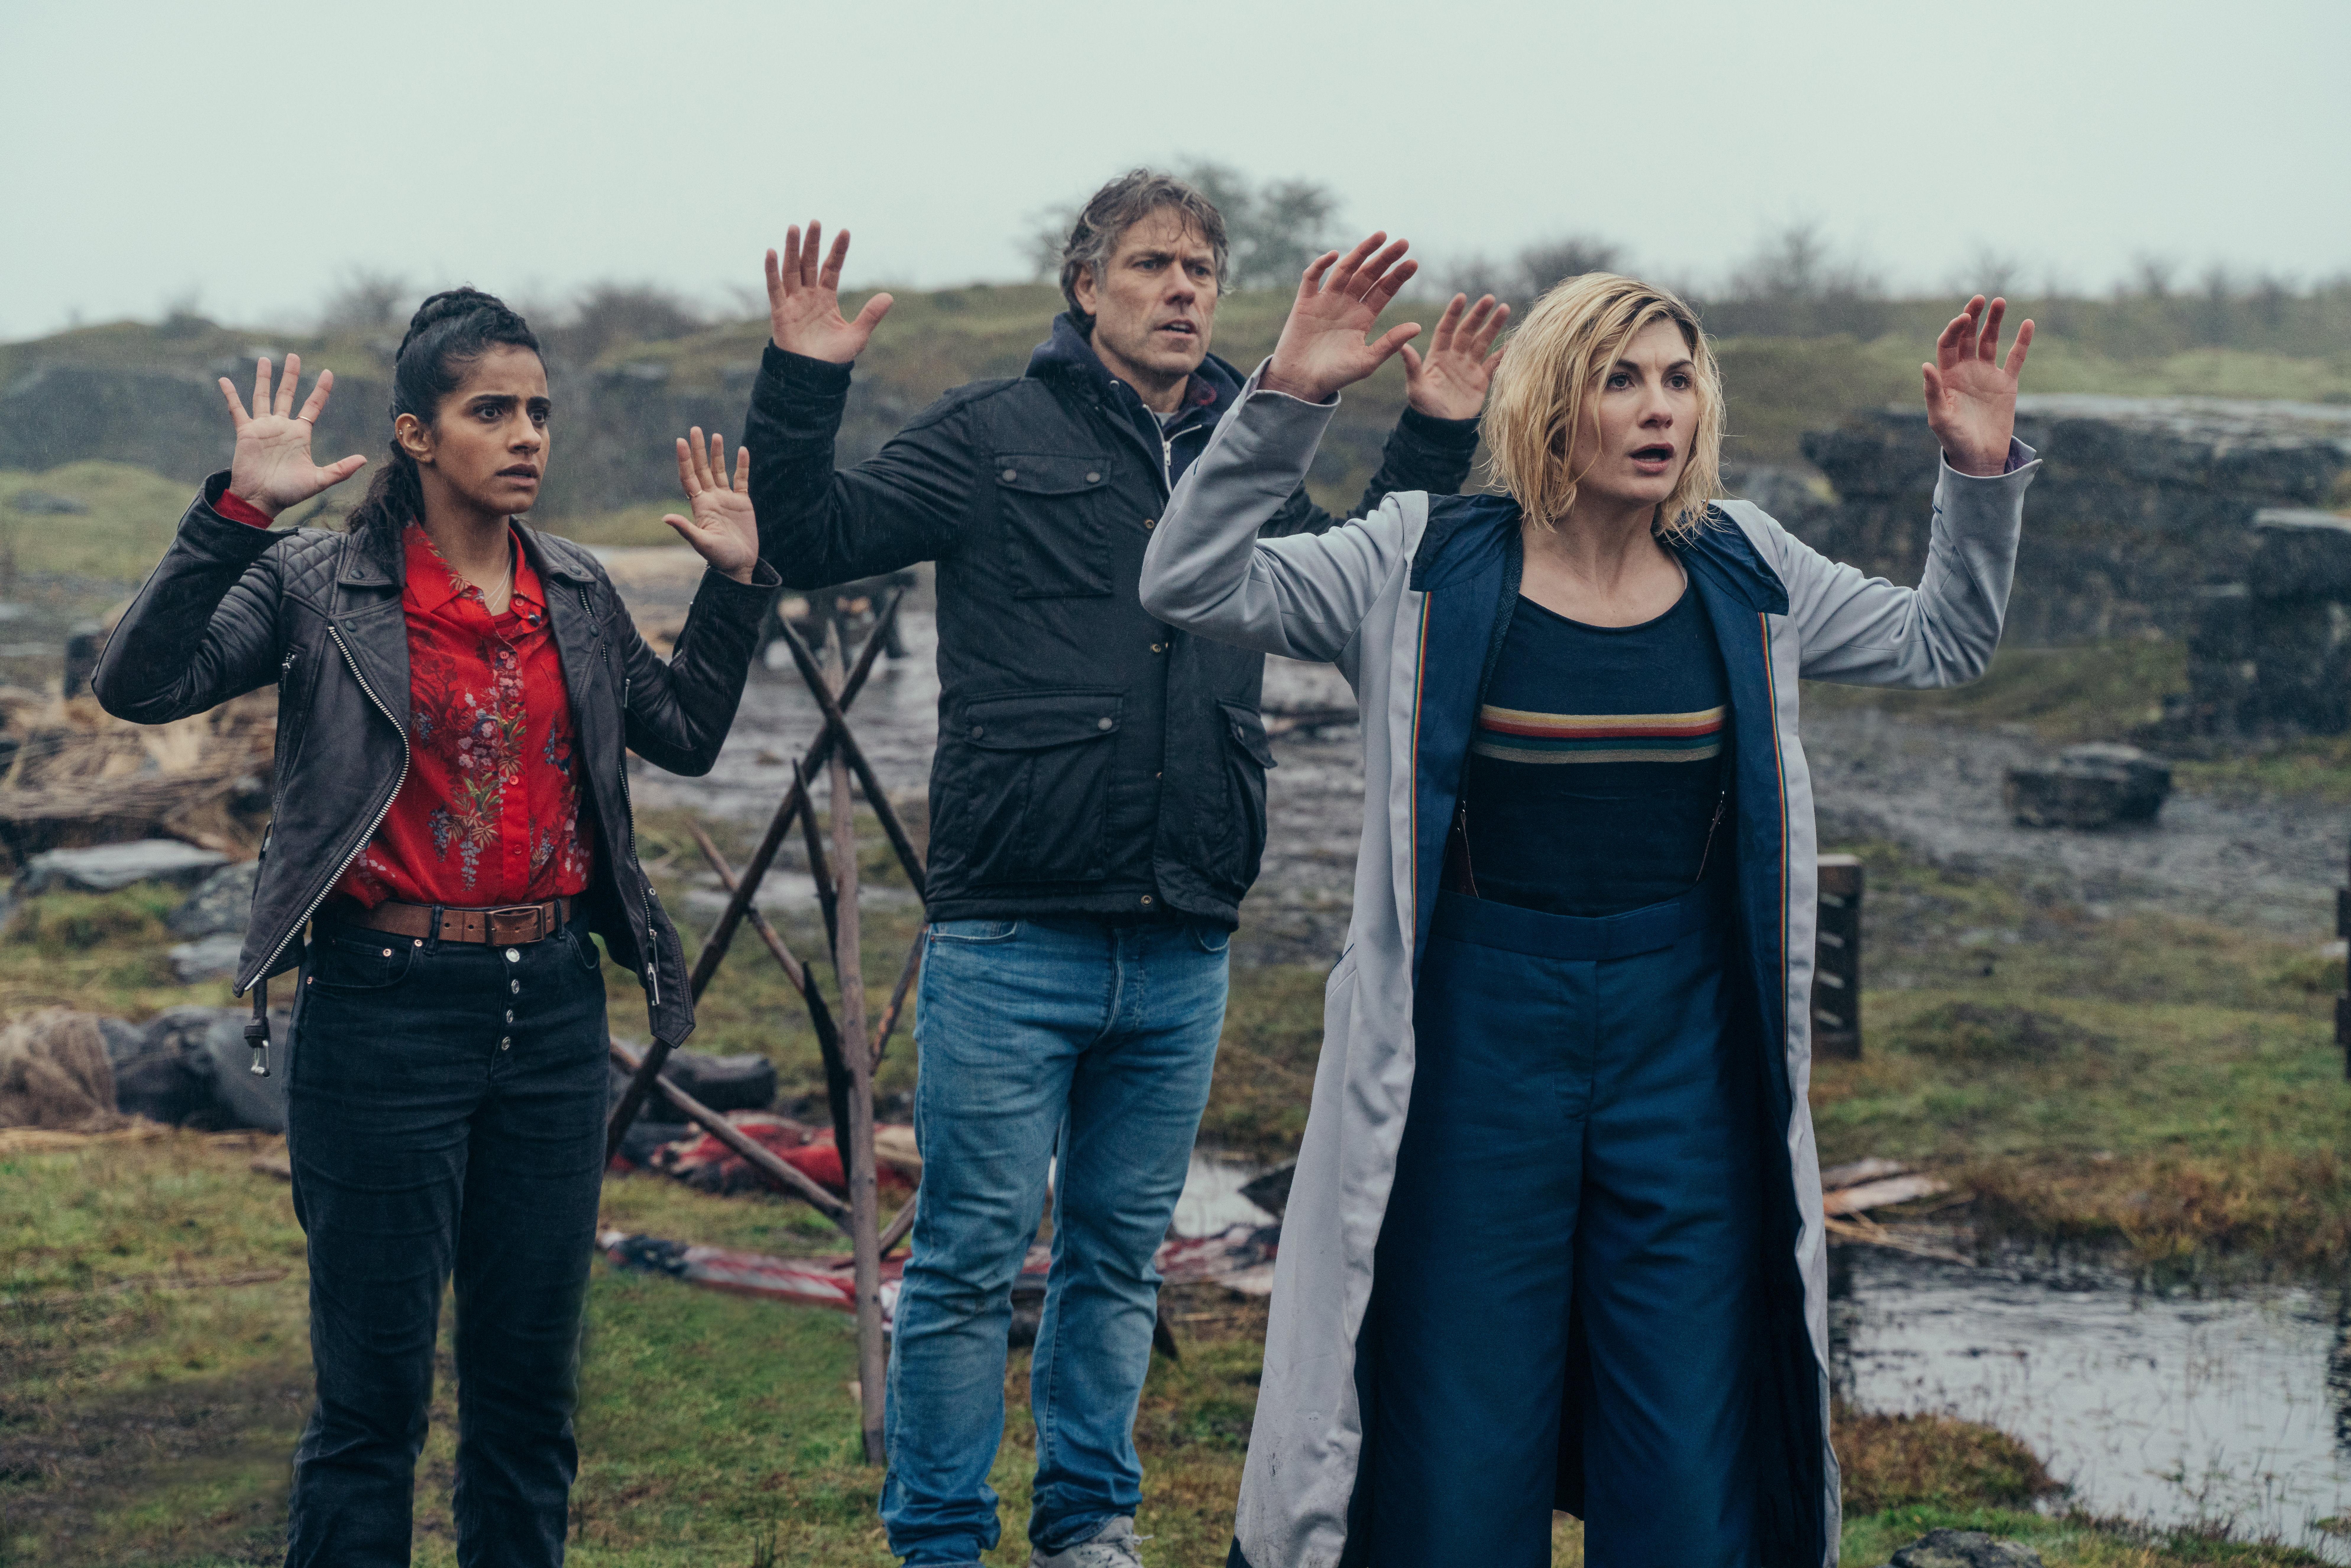 'Doctor Who: Flux' Releases First-Look Trailer For 13th Season, Spotlighting Guest Actors And Monsters